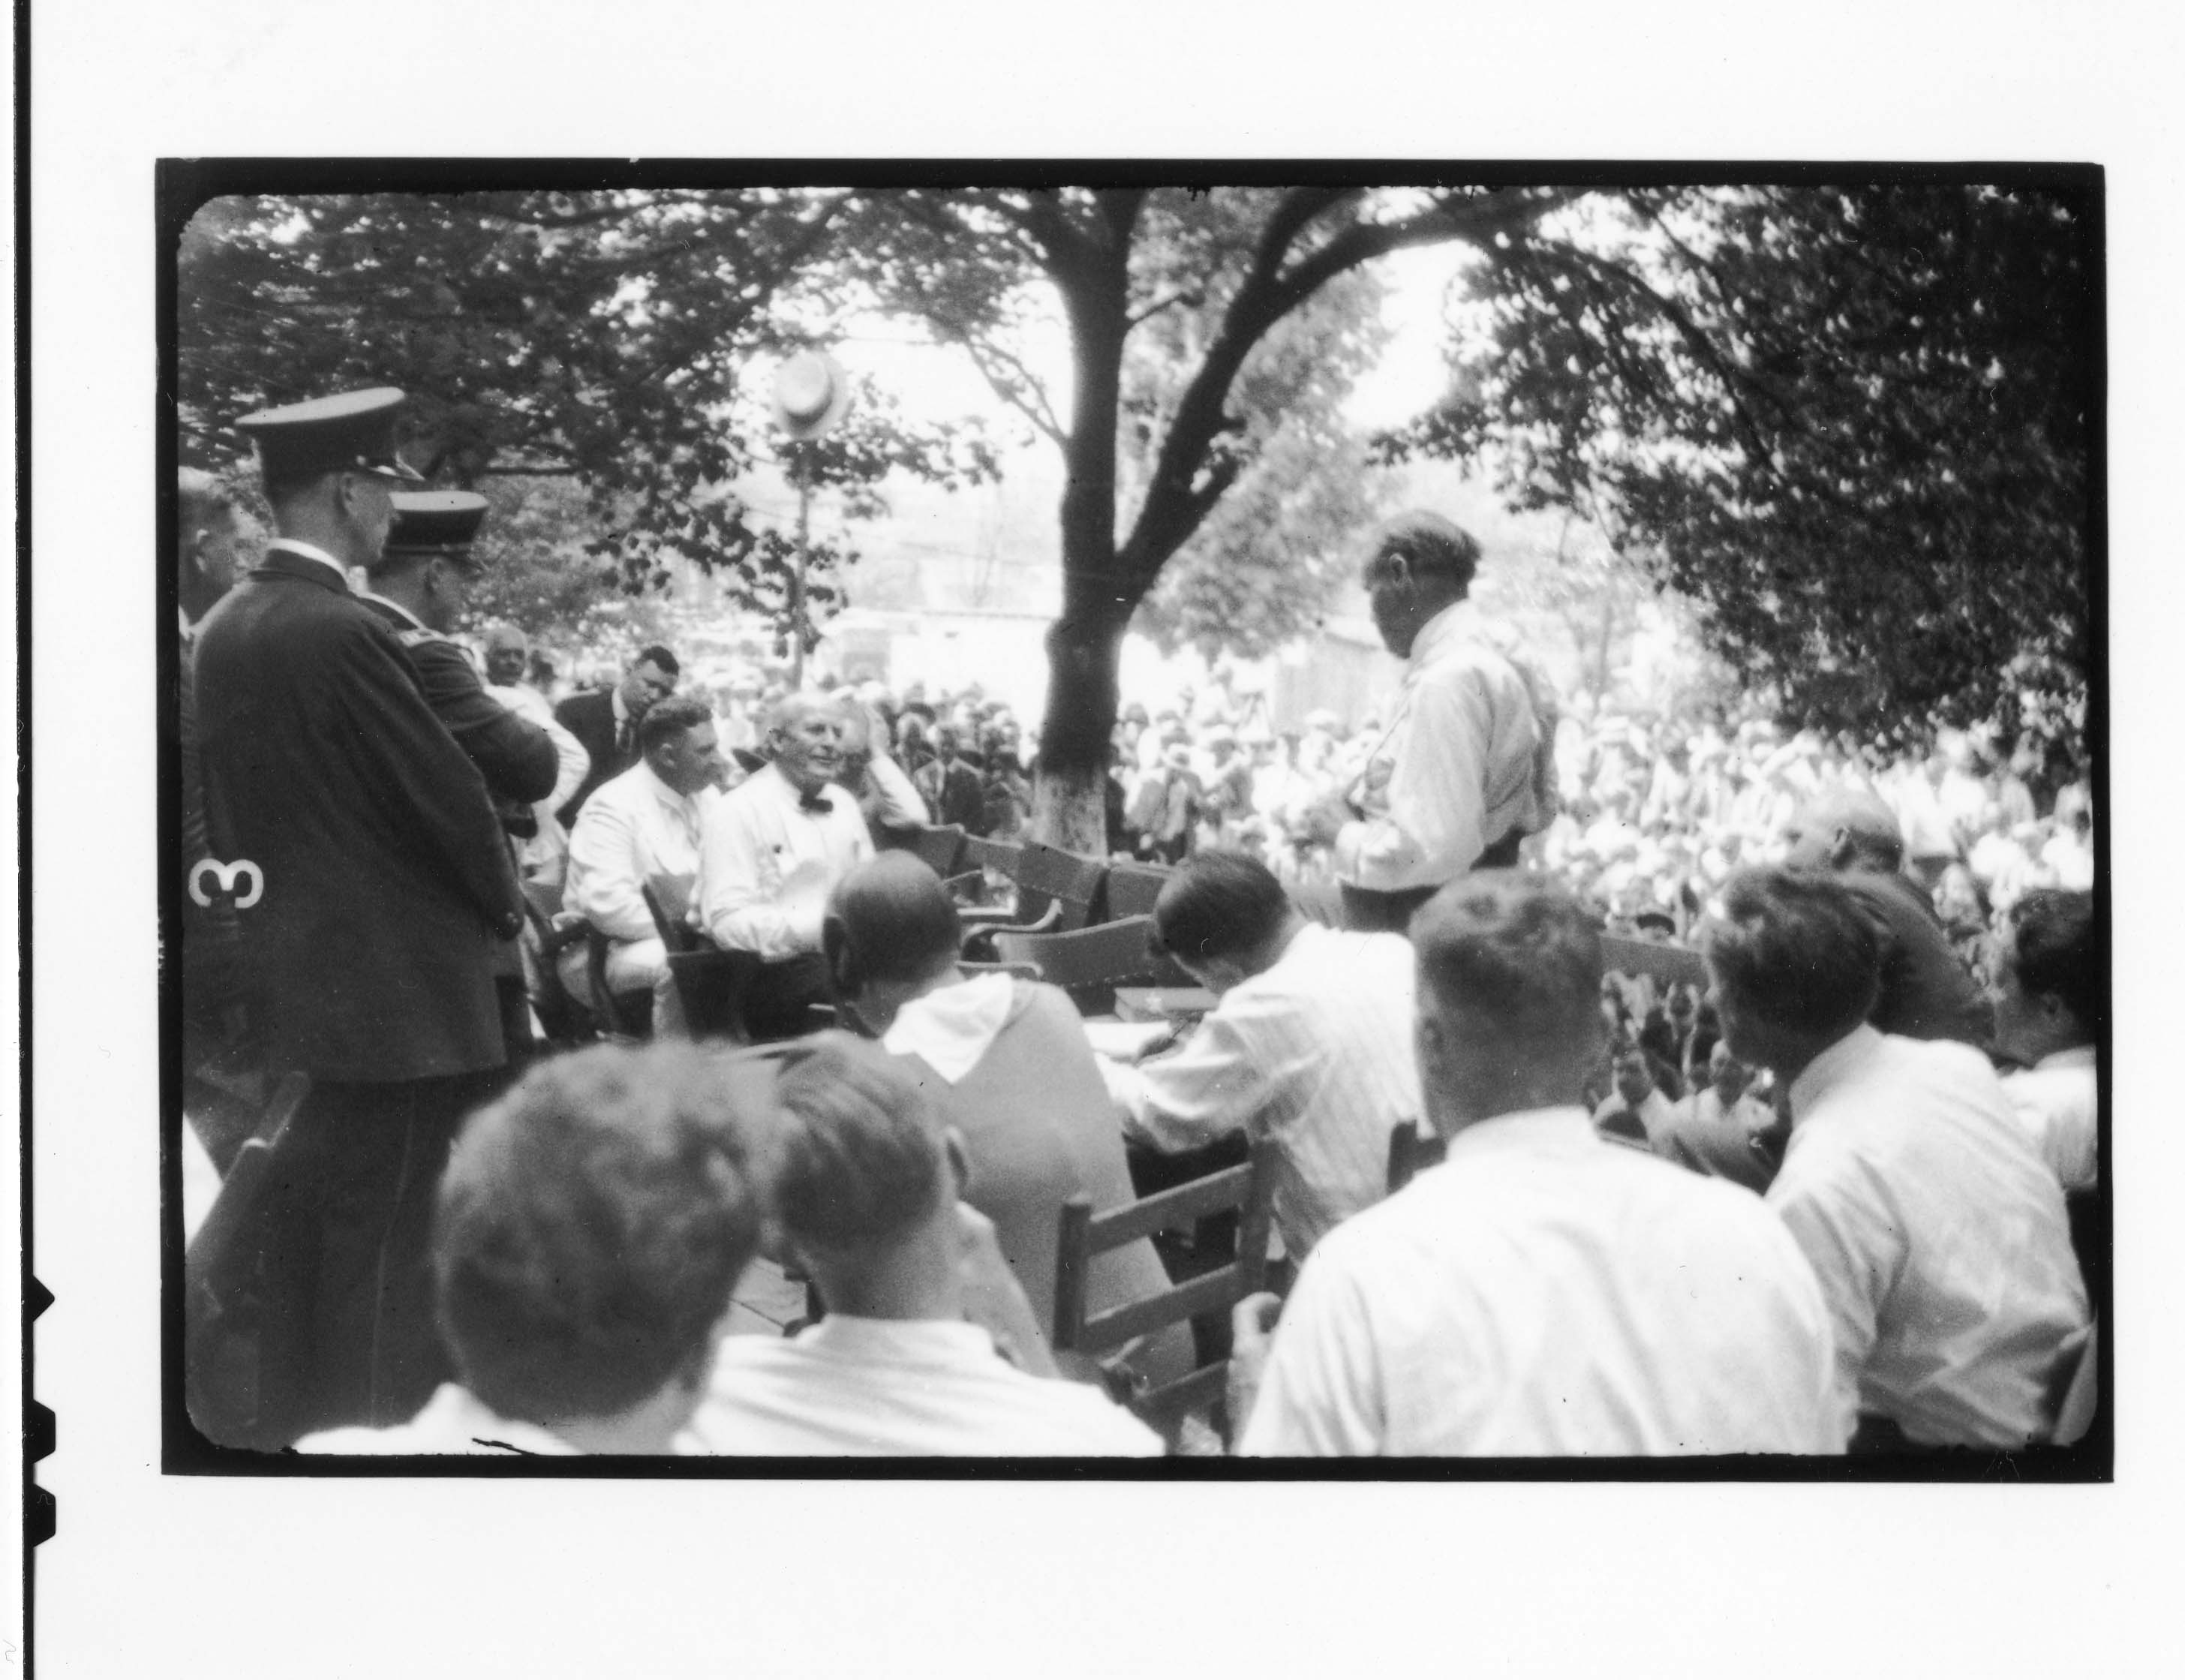 Tennessee v. John T. Scopes Trial: Outdoor proceedings on July 20, 1925, showing William Jennings Br